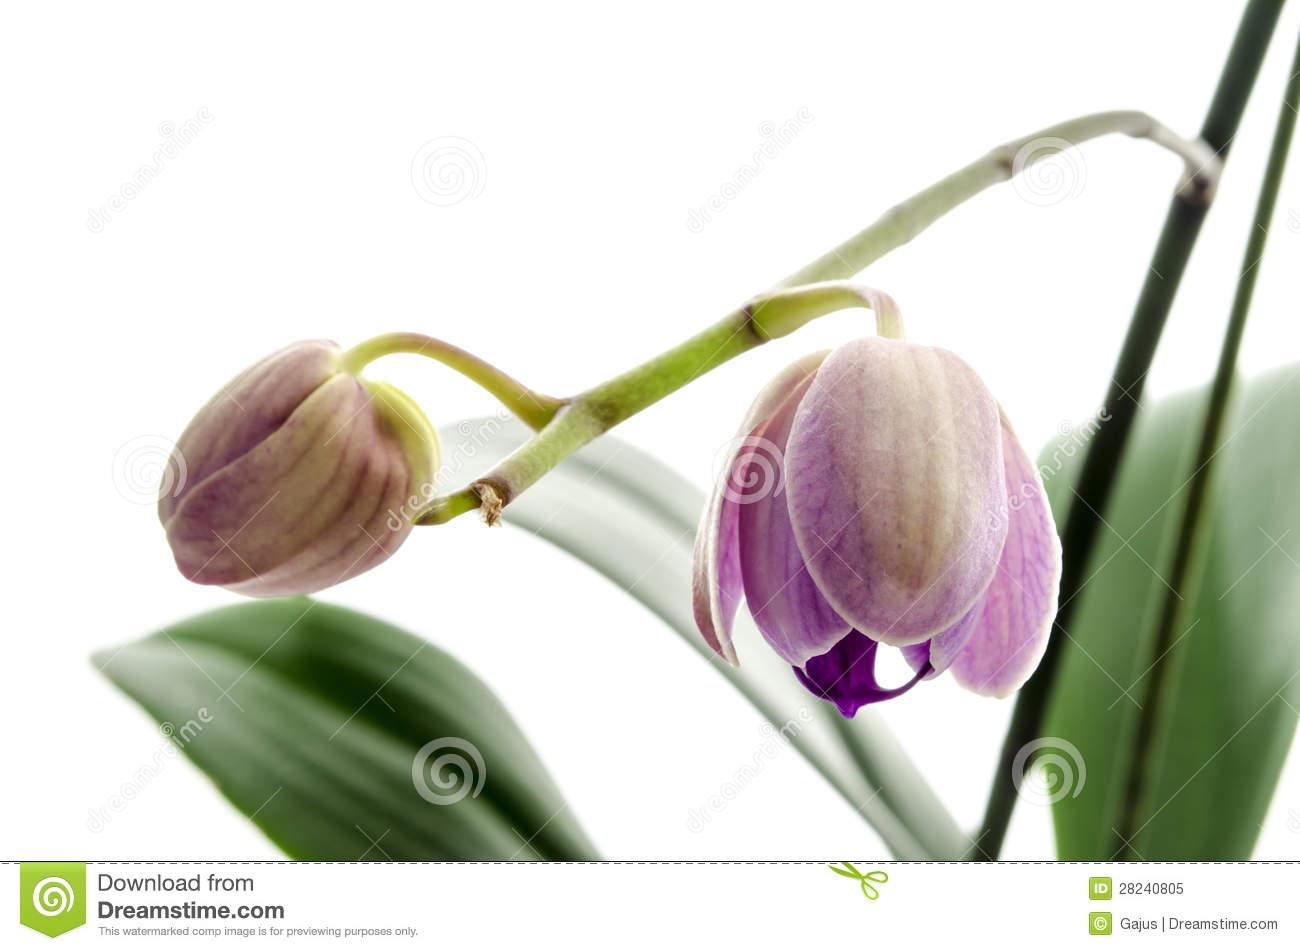 Royalty Free Stock Photo: Developing flower buds: dreamstime.com/royalty-free-stock-photo-developing-flower-buds...